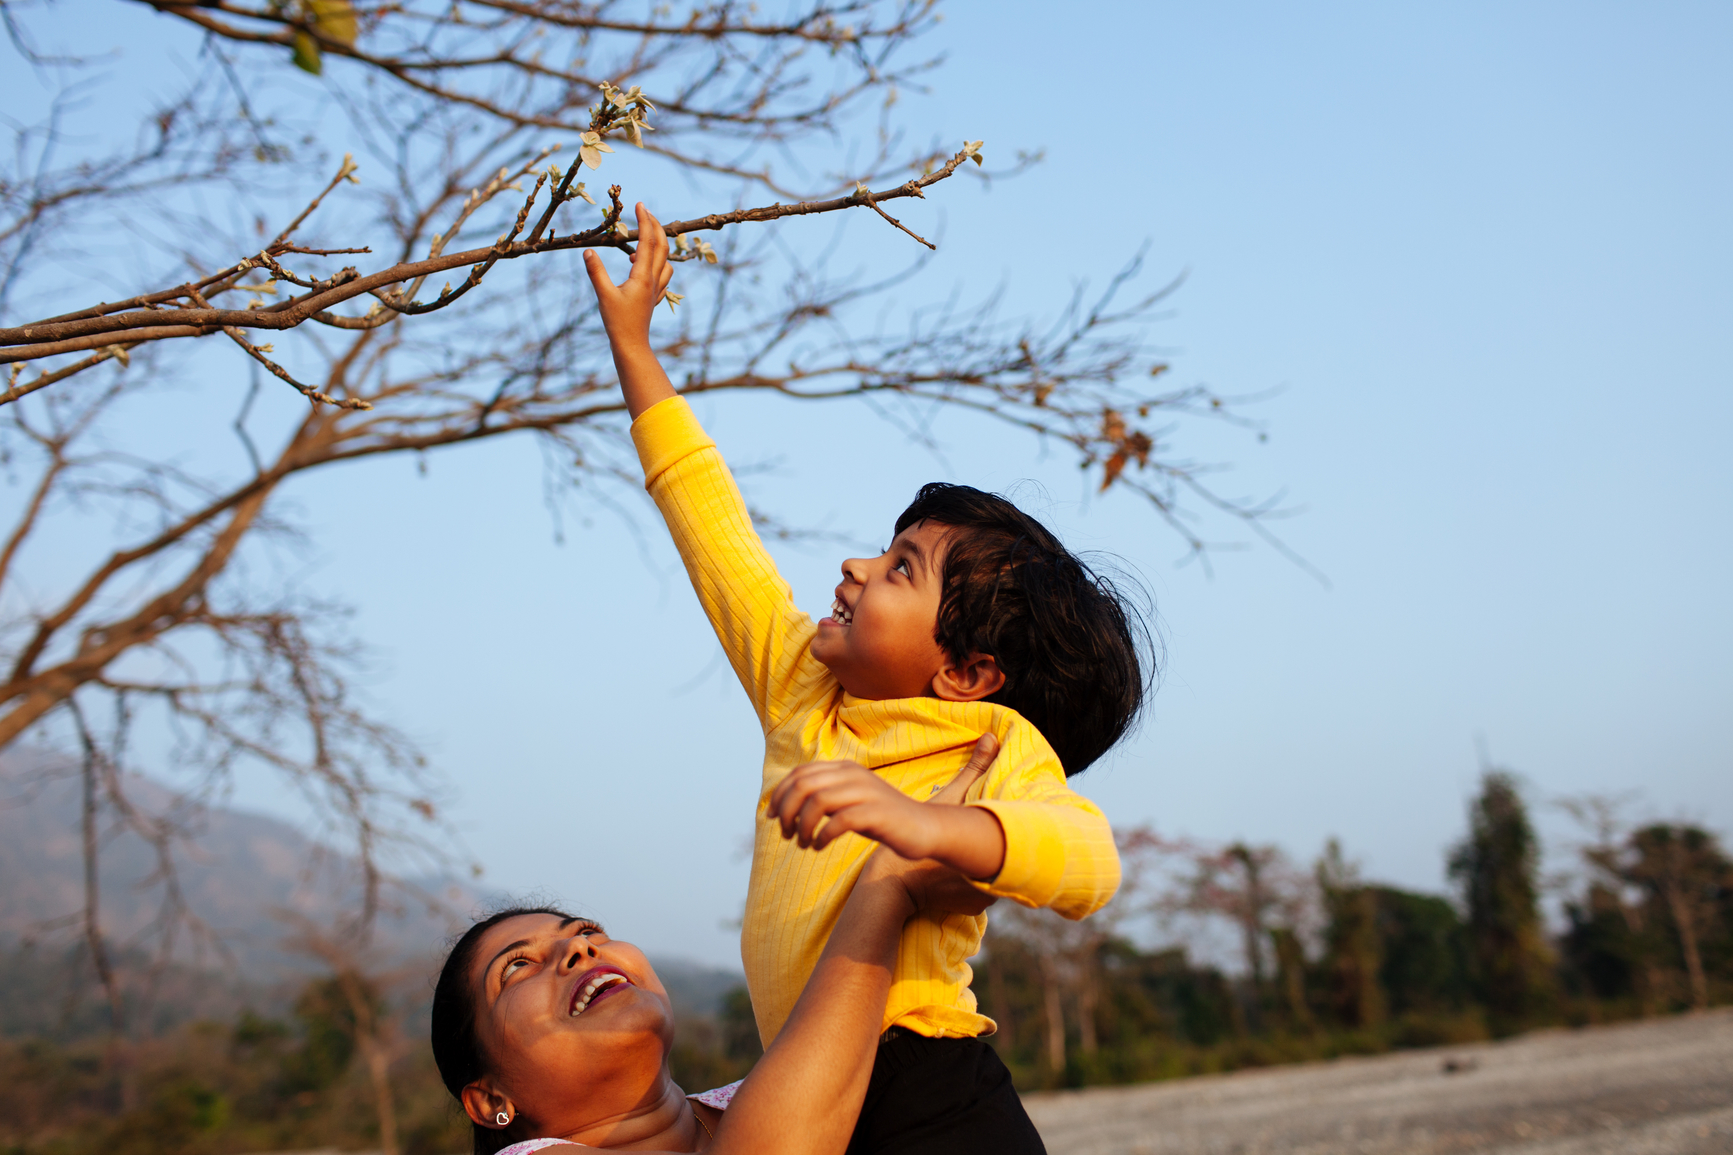 Child Reaching Up To Tree Branches From Her Mother's Lap